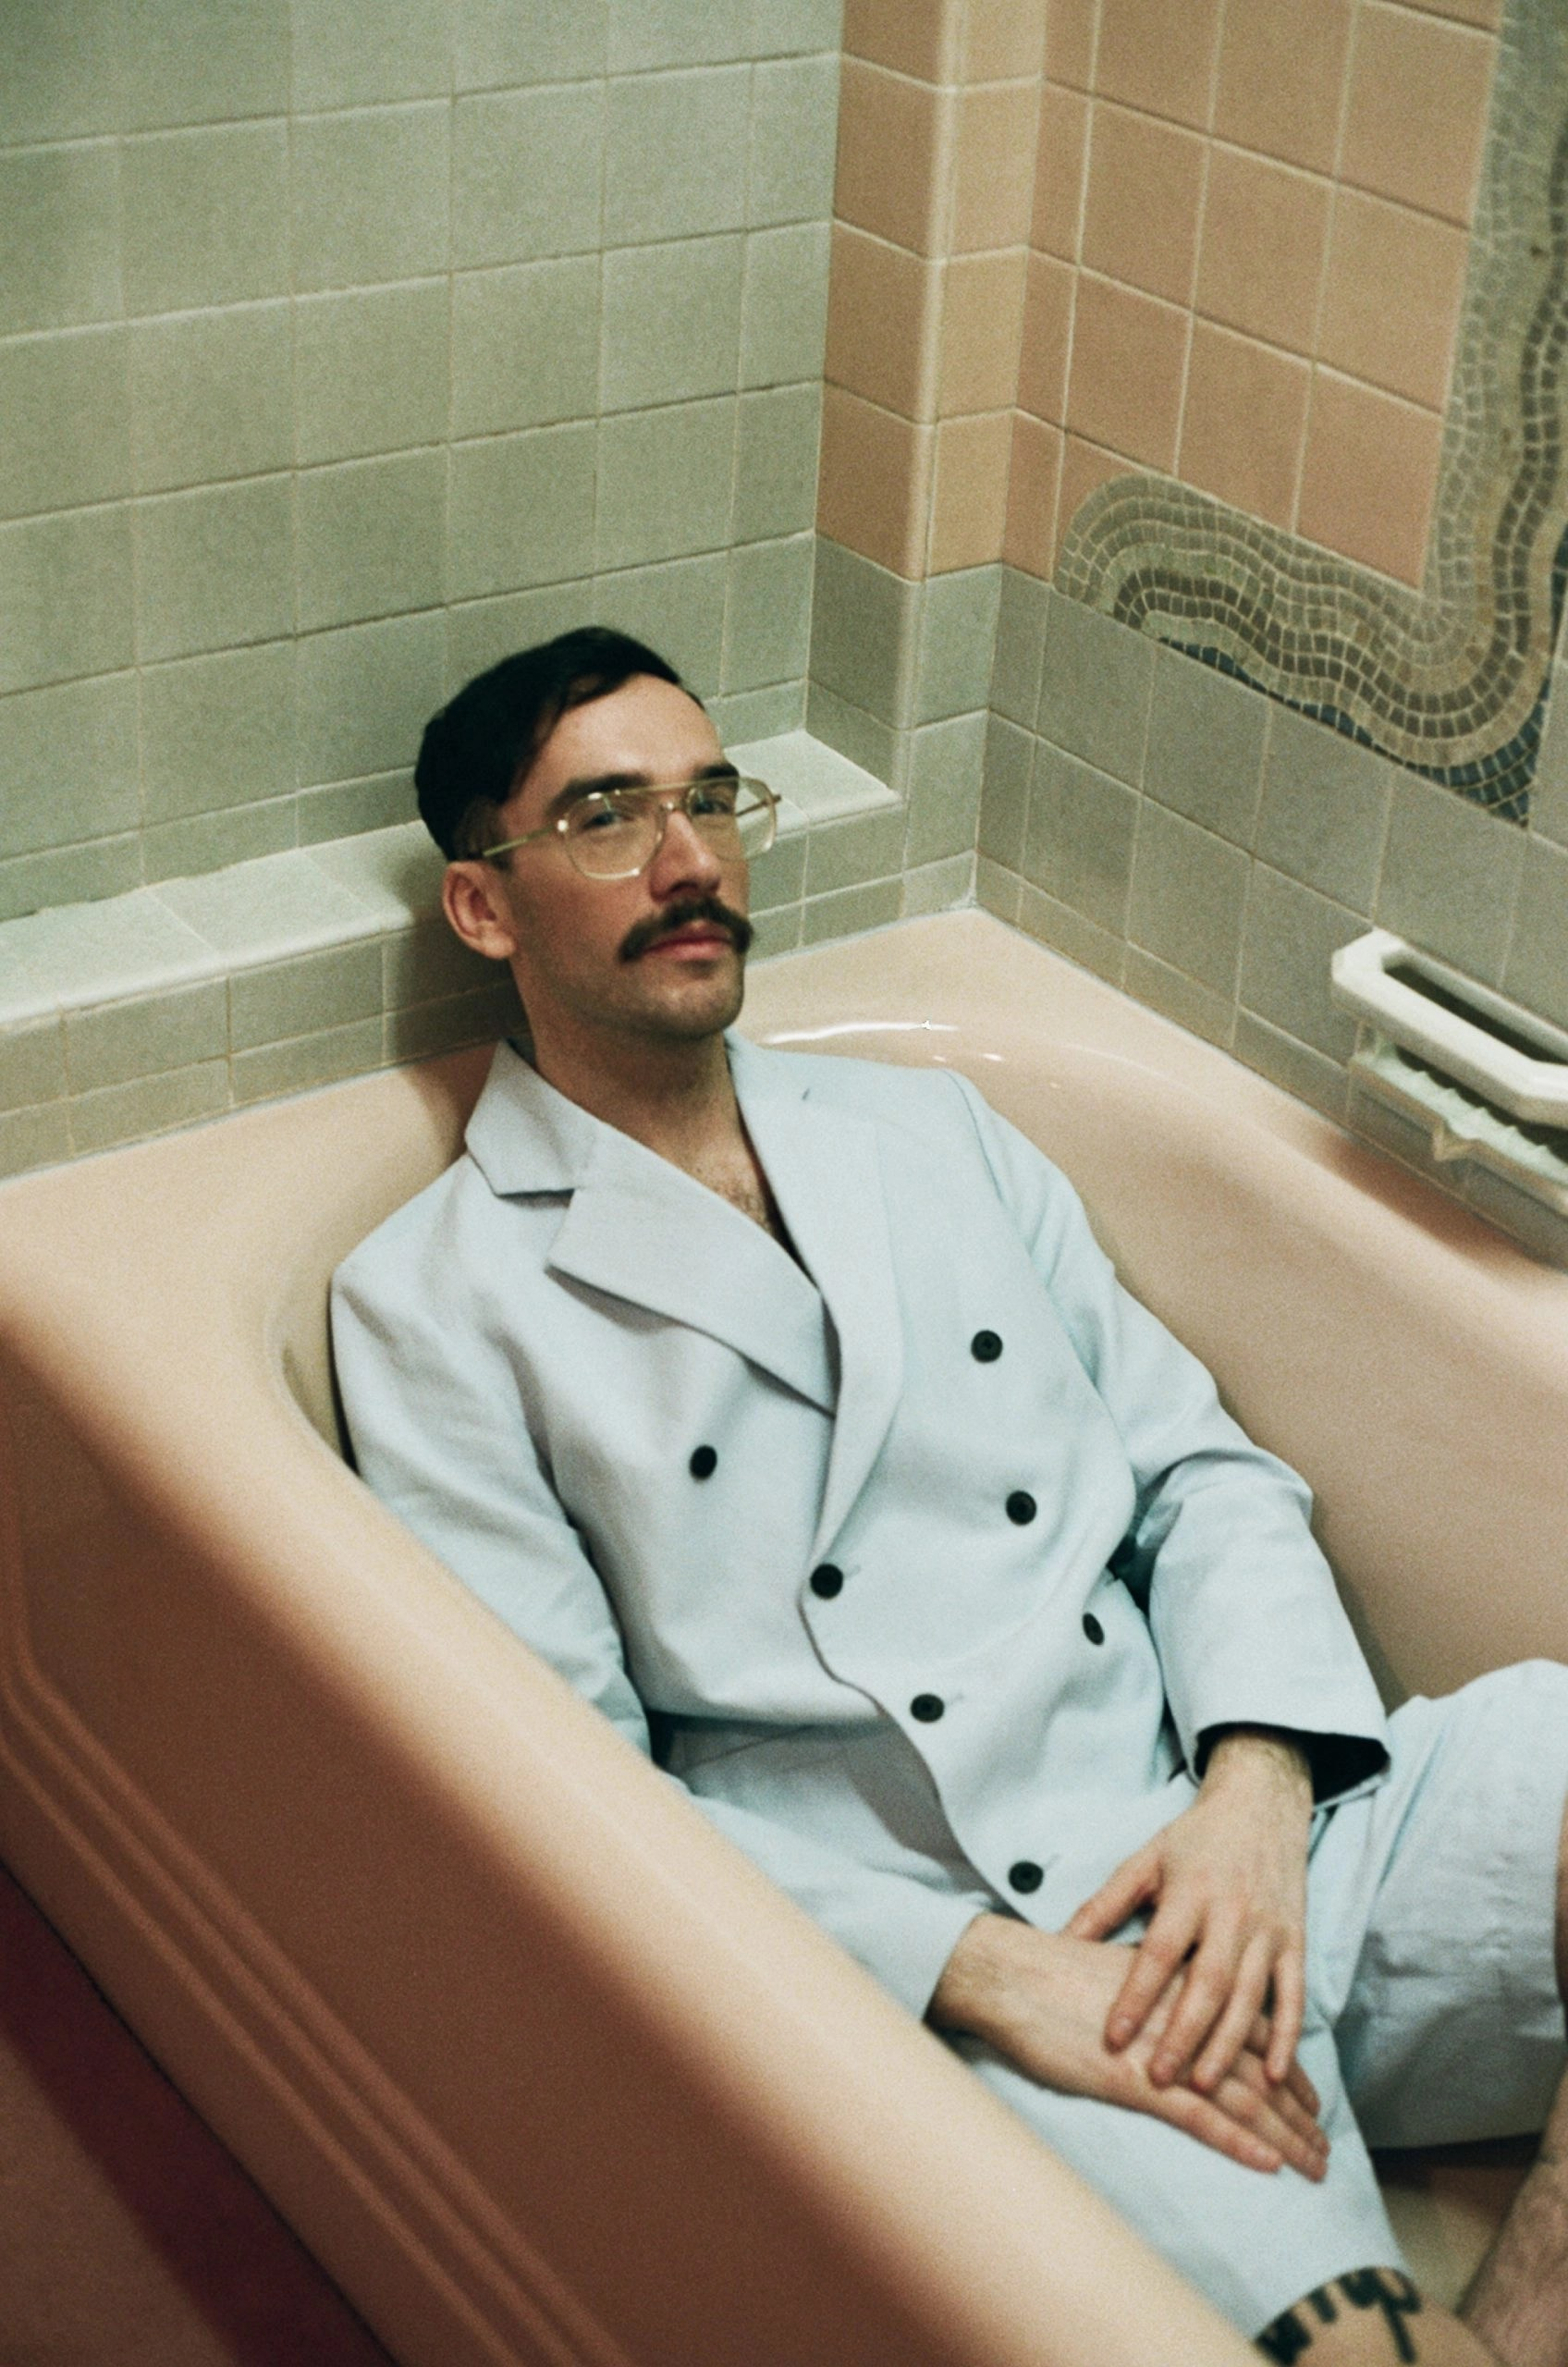 A beautifully coiffed, moustachioed man lounges in a pink enamel bathtub. Wearing a double-breasted powder-blue shorts suit, his hands are folded gently in his lap.